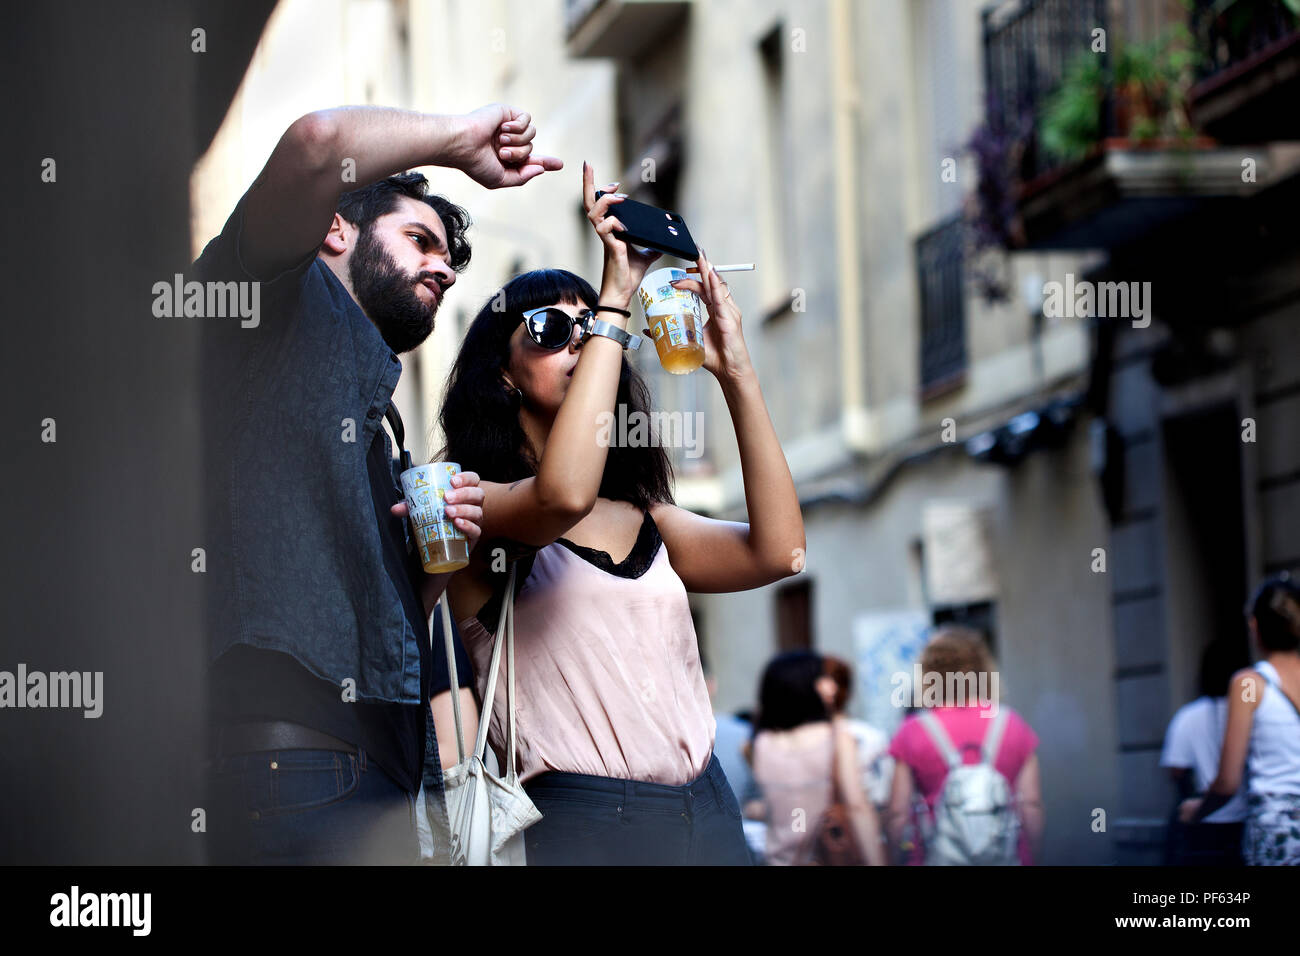 Trendy young couple taking photos on a smartphone, Barcelona, Spain. - Stock Image